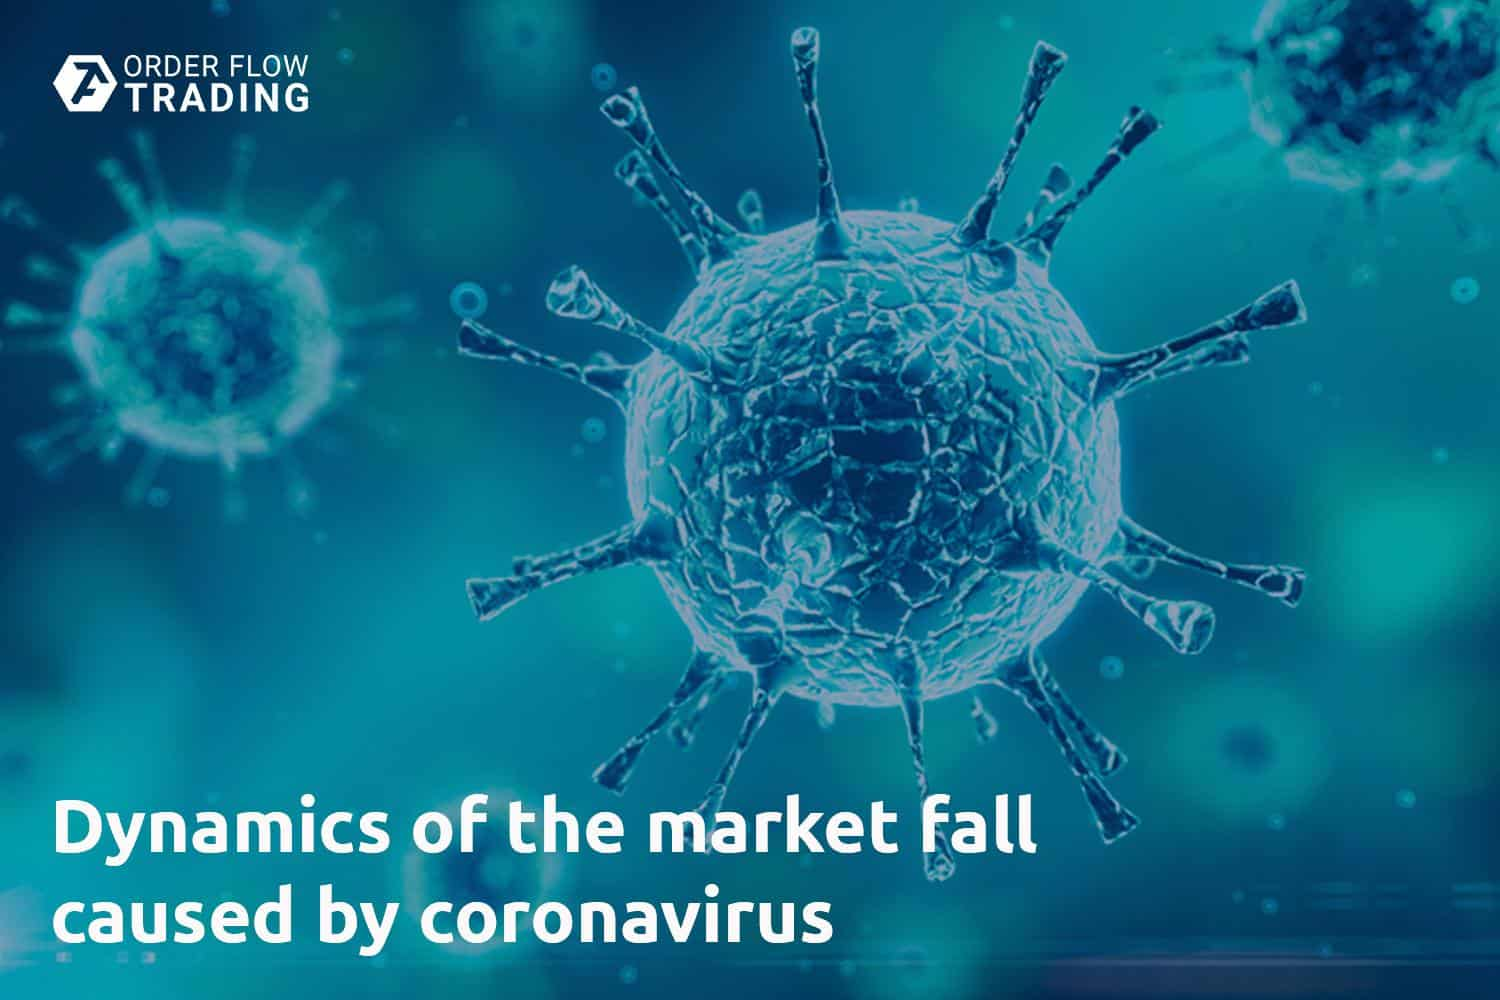 Dynamics of the market fall caused by coronavirus